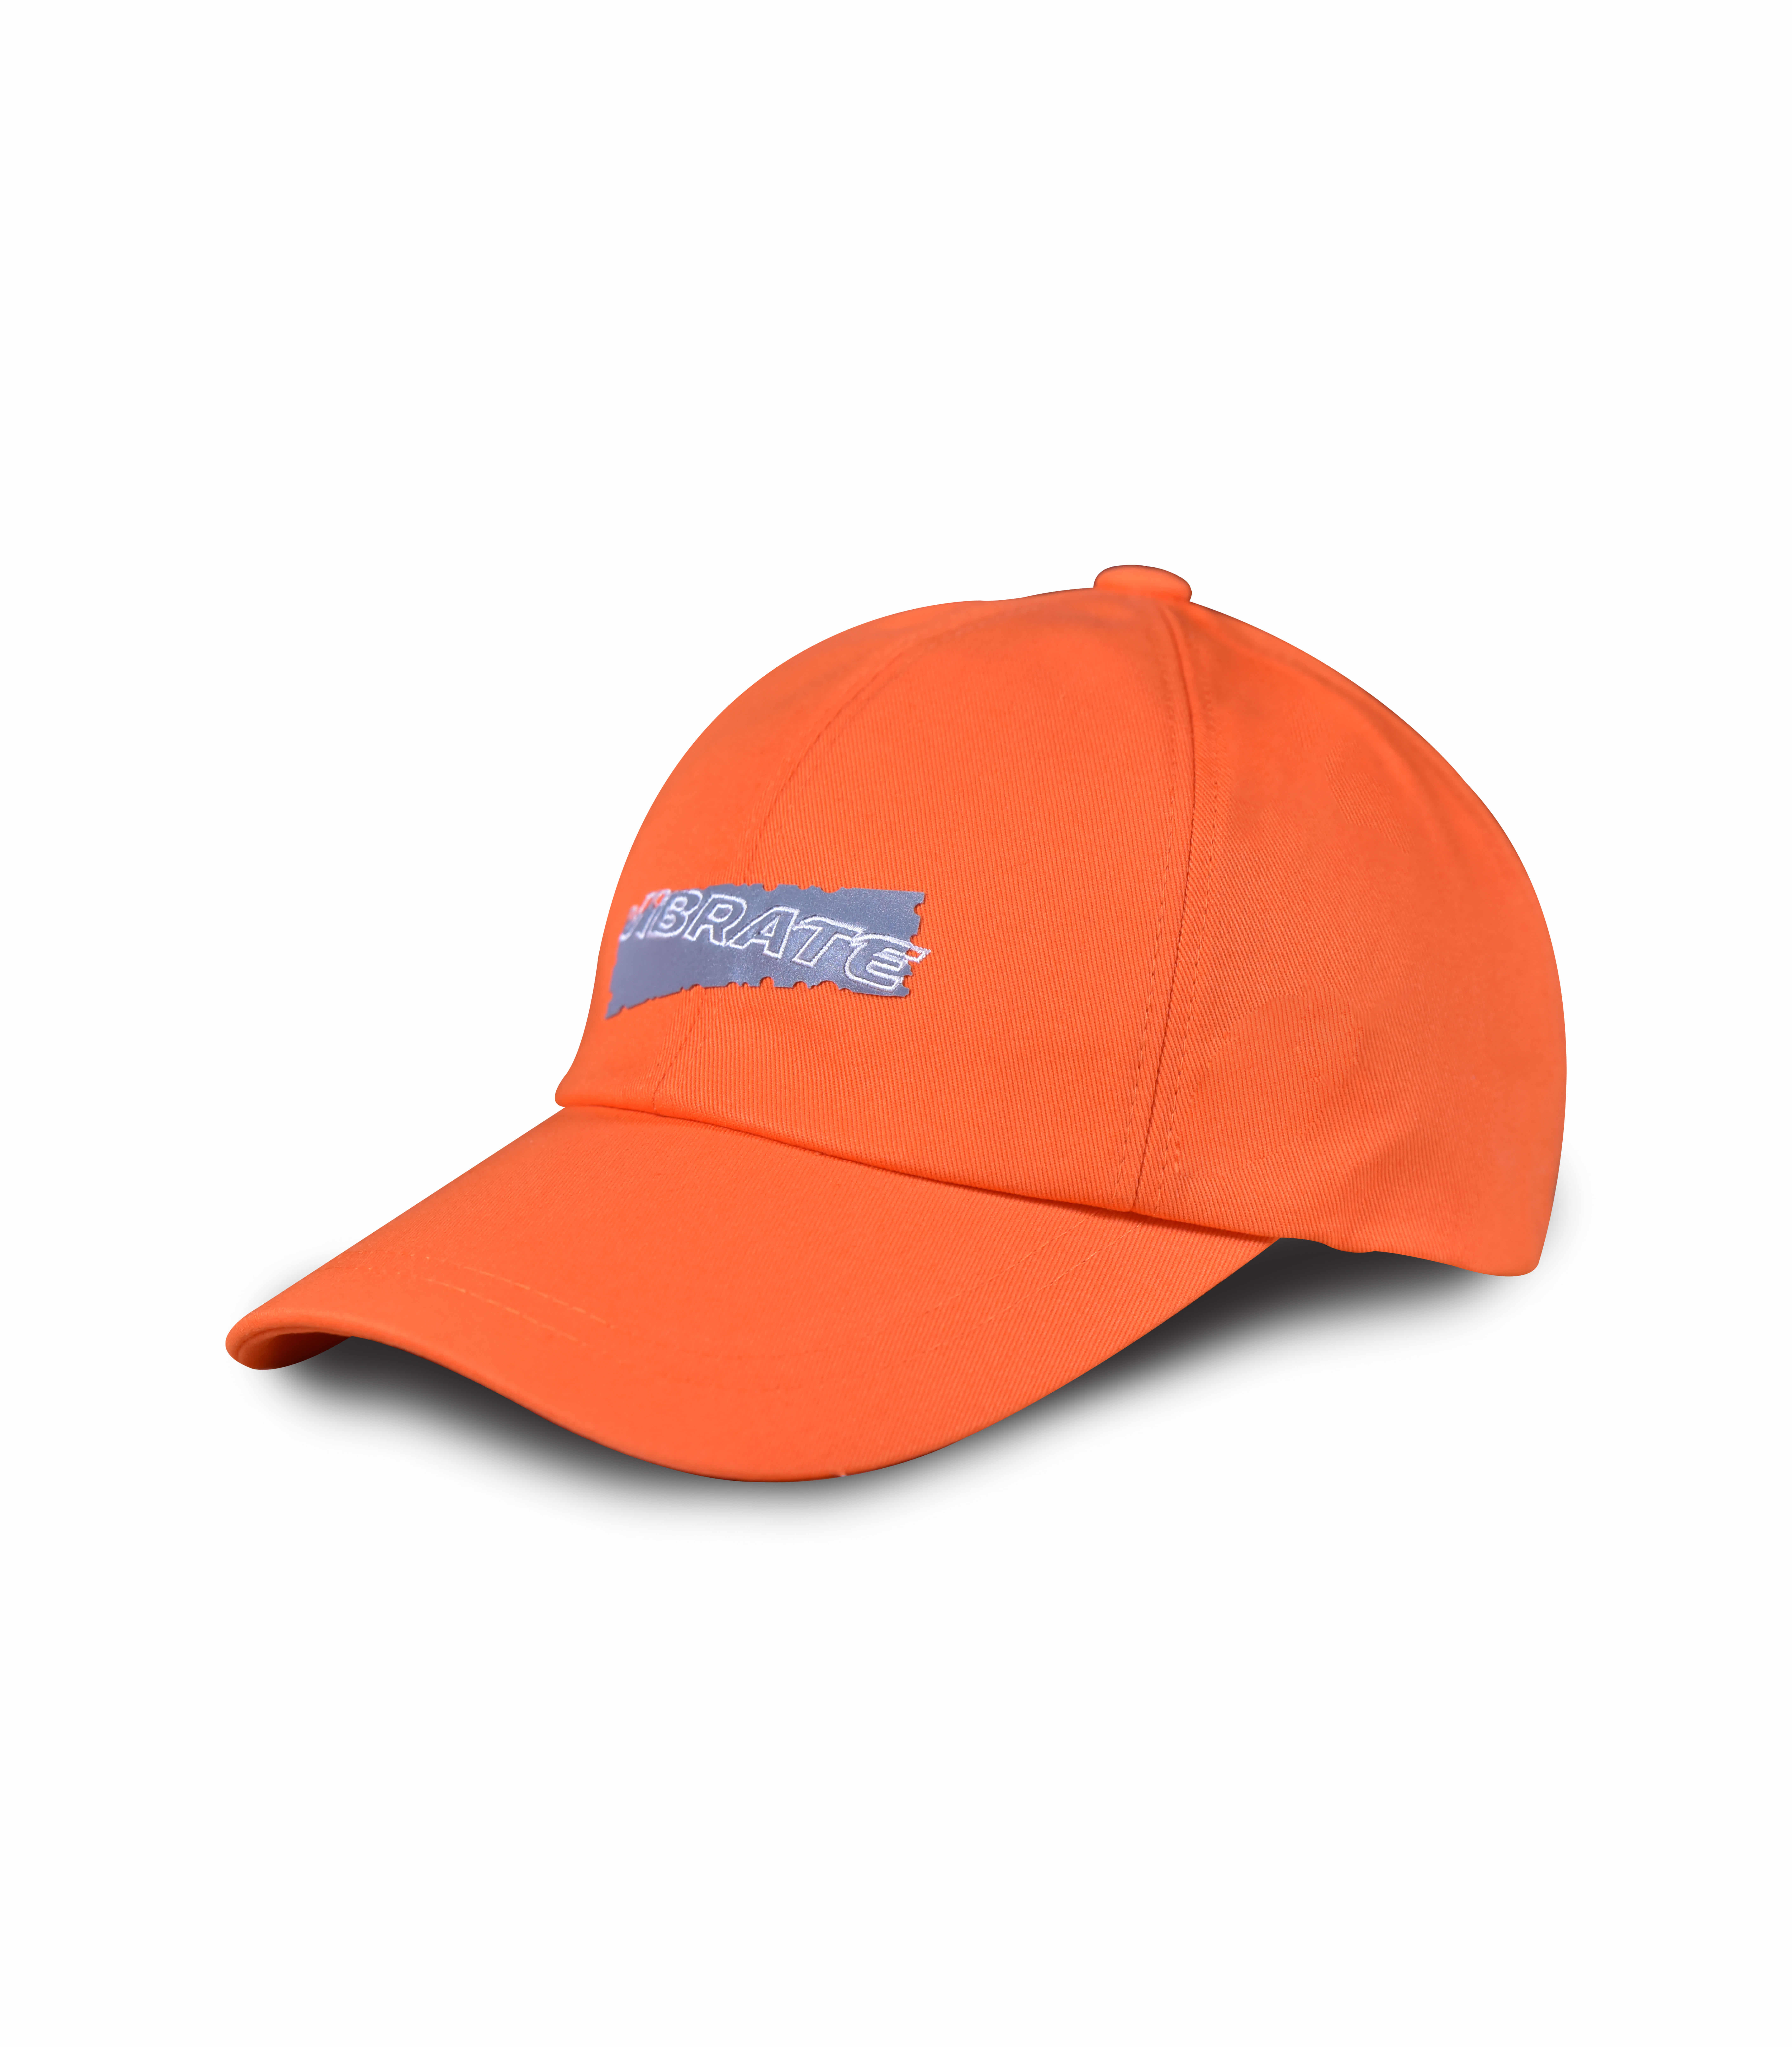 SCOTCH BALL CAP (ORANGE)